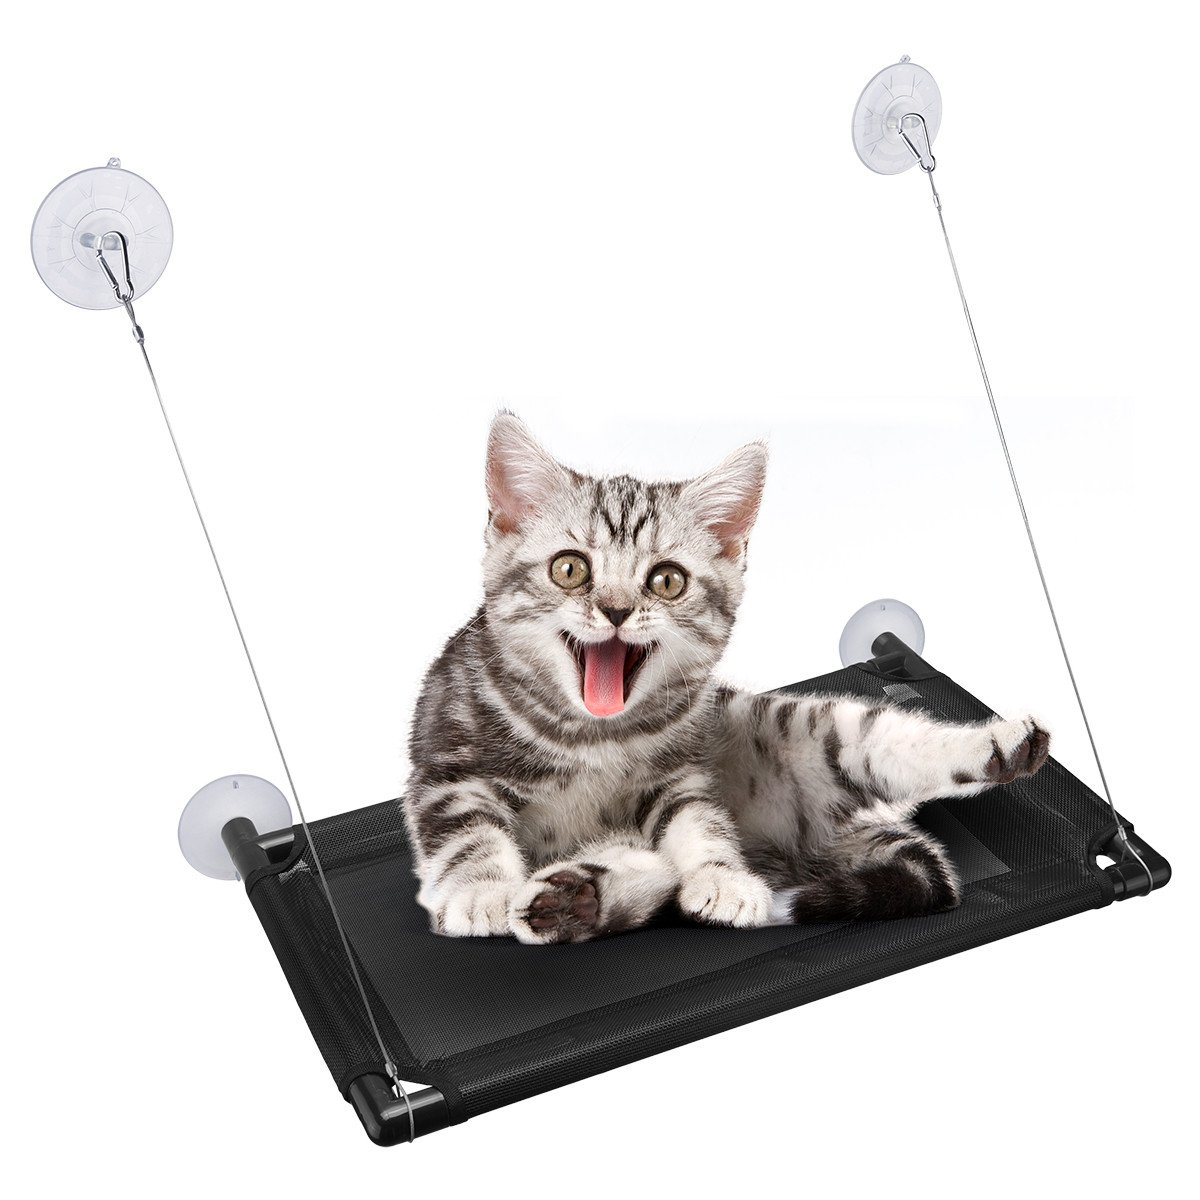 isYoung Cat Window Perch, Mounted Cat Sunshine seat Pet Hammock Kitty Bed Perch Cushion with 4 Ultra Heavy Duty Suction Cups Cat Bed Holds Up to 60lbs by isYoung